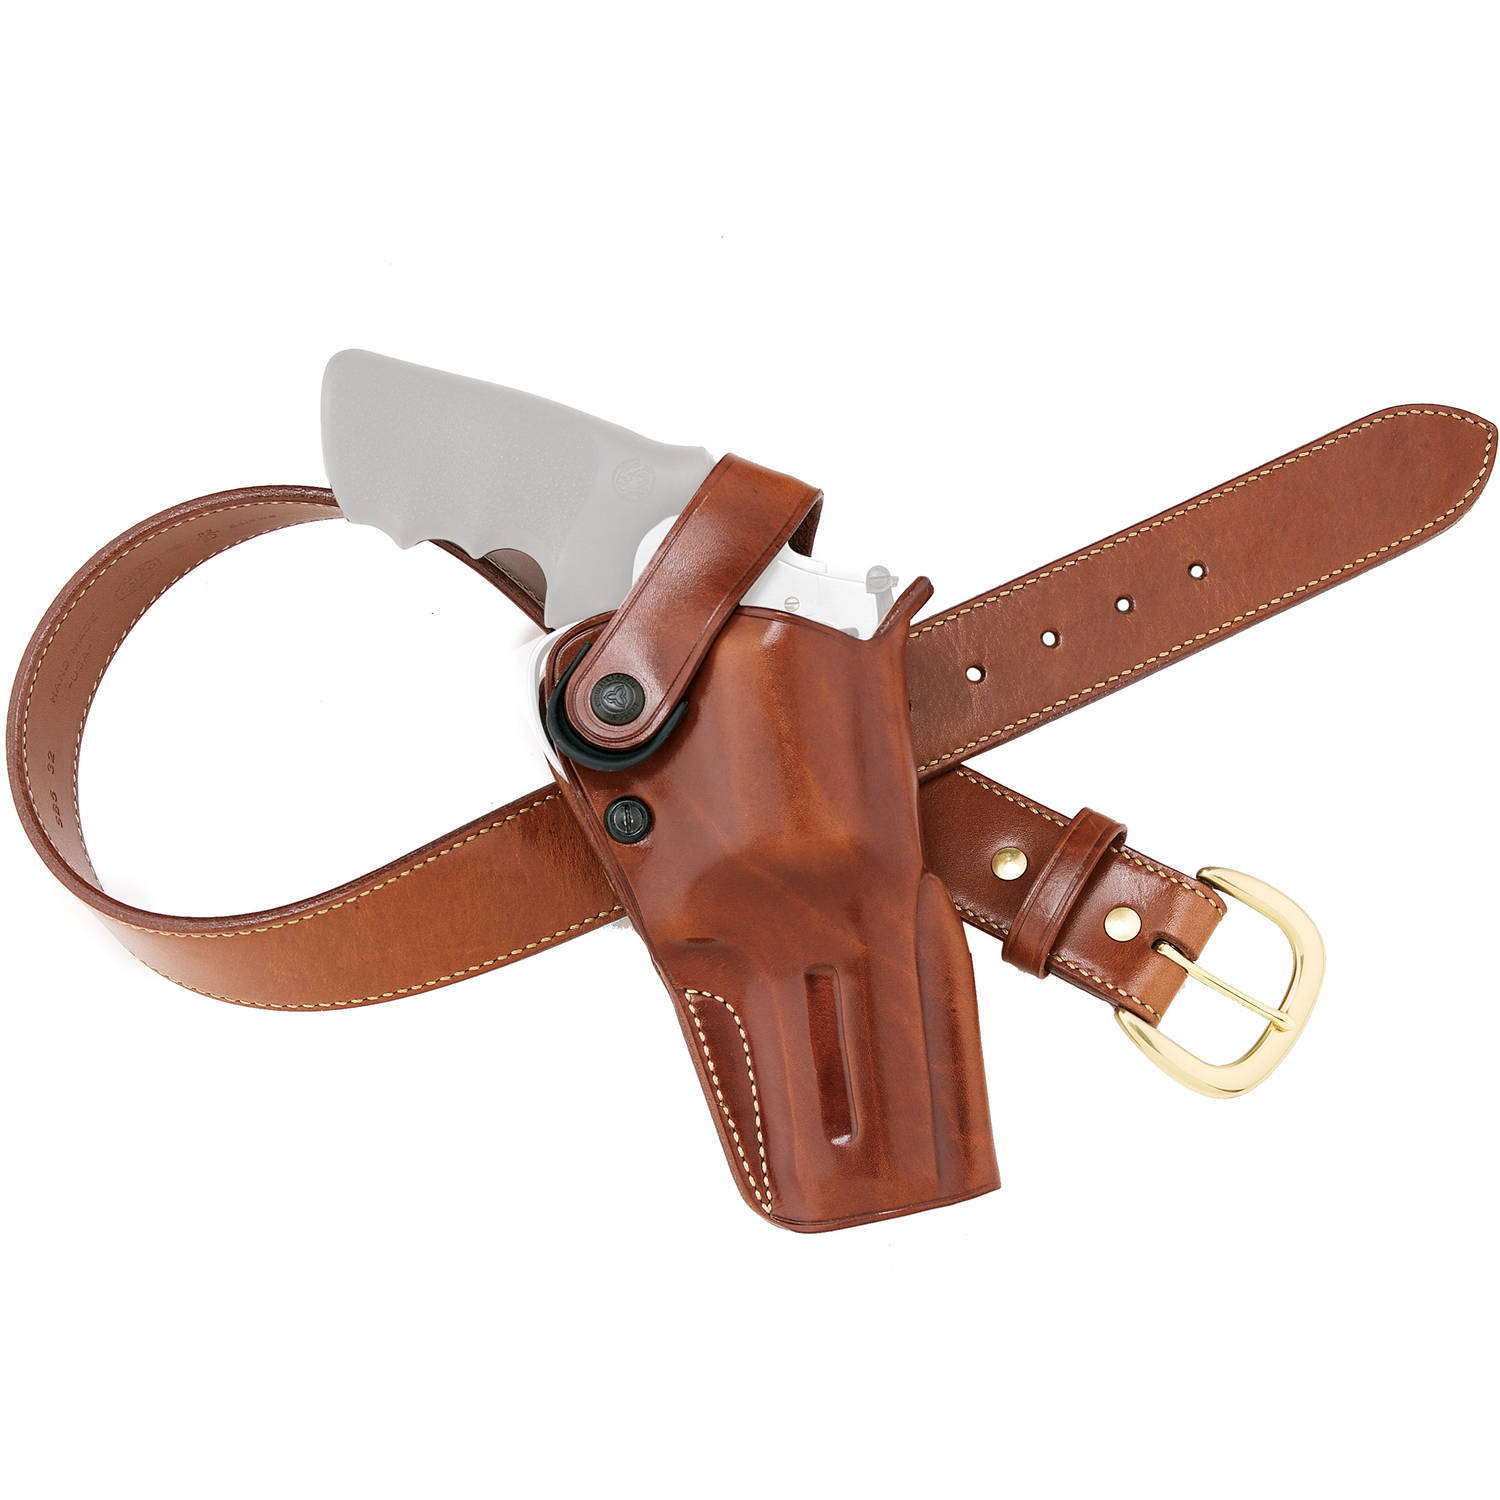 Galco DAO Belt Holster, Fits Taurus Judge, Right Hand, Tan Leather